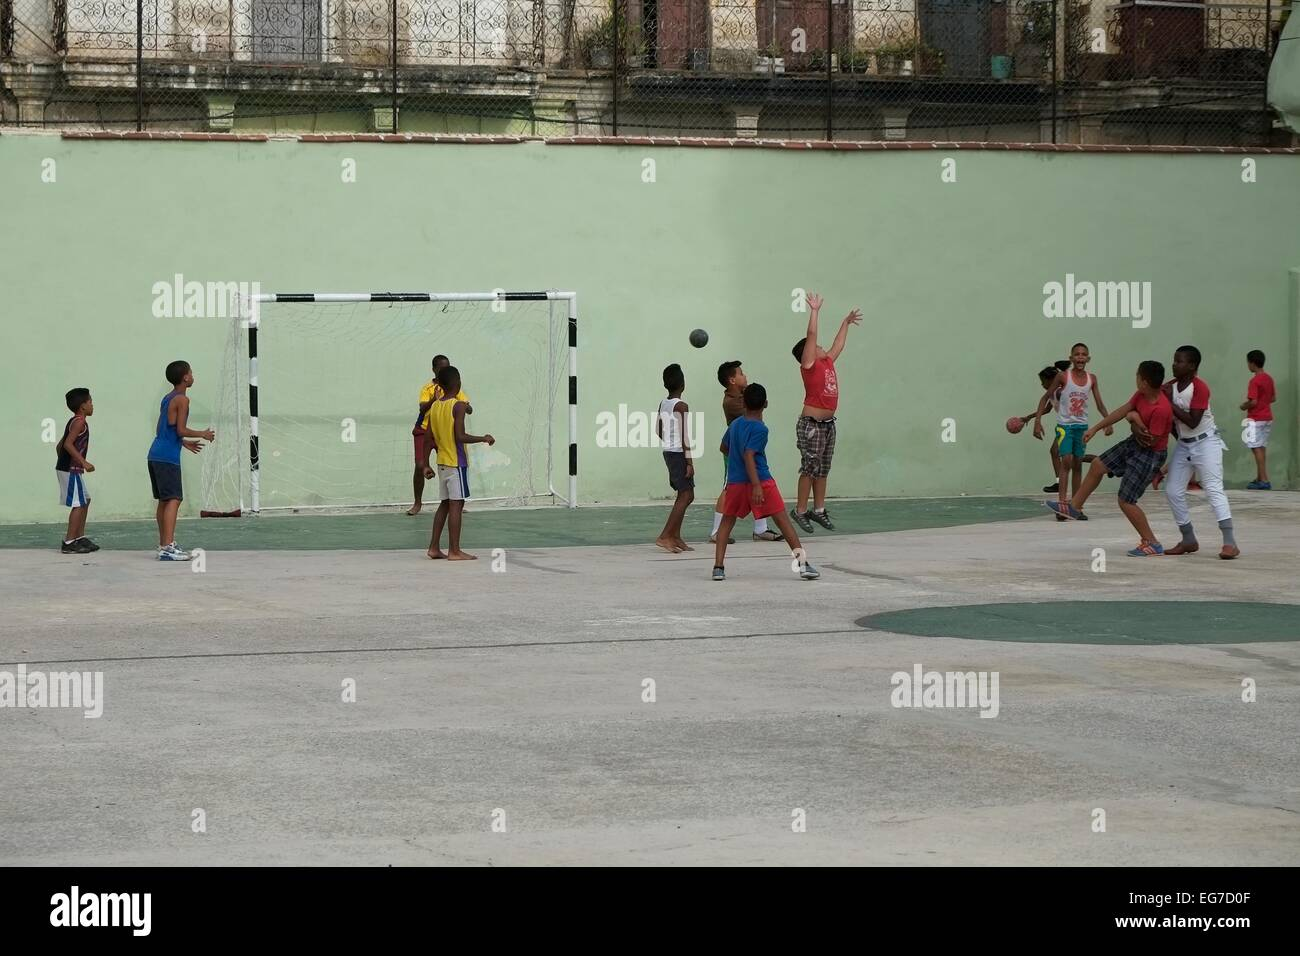 School children playing handball in a social sports arena, Havana, Cuba. - Stock Image